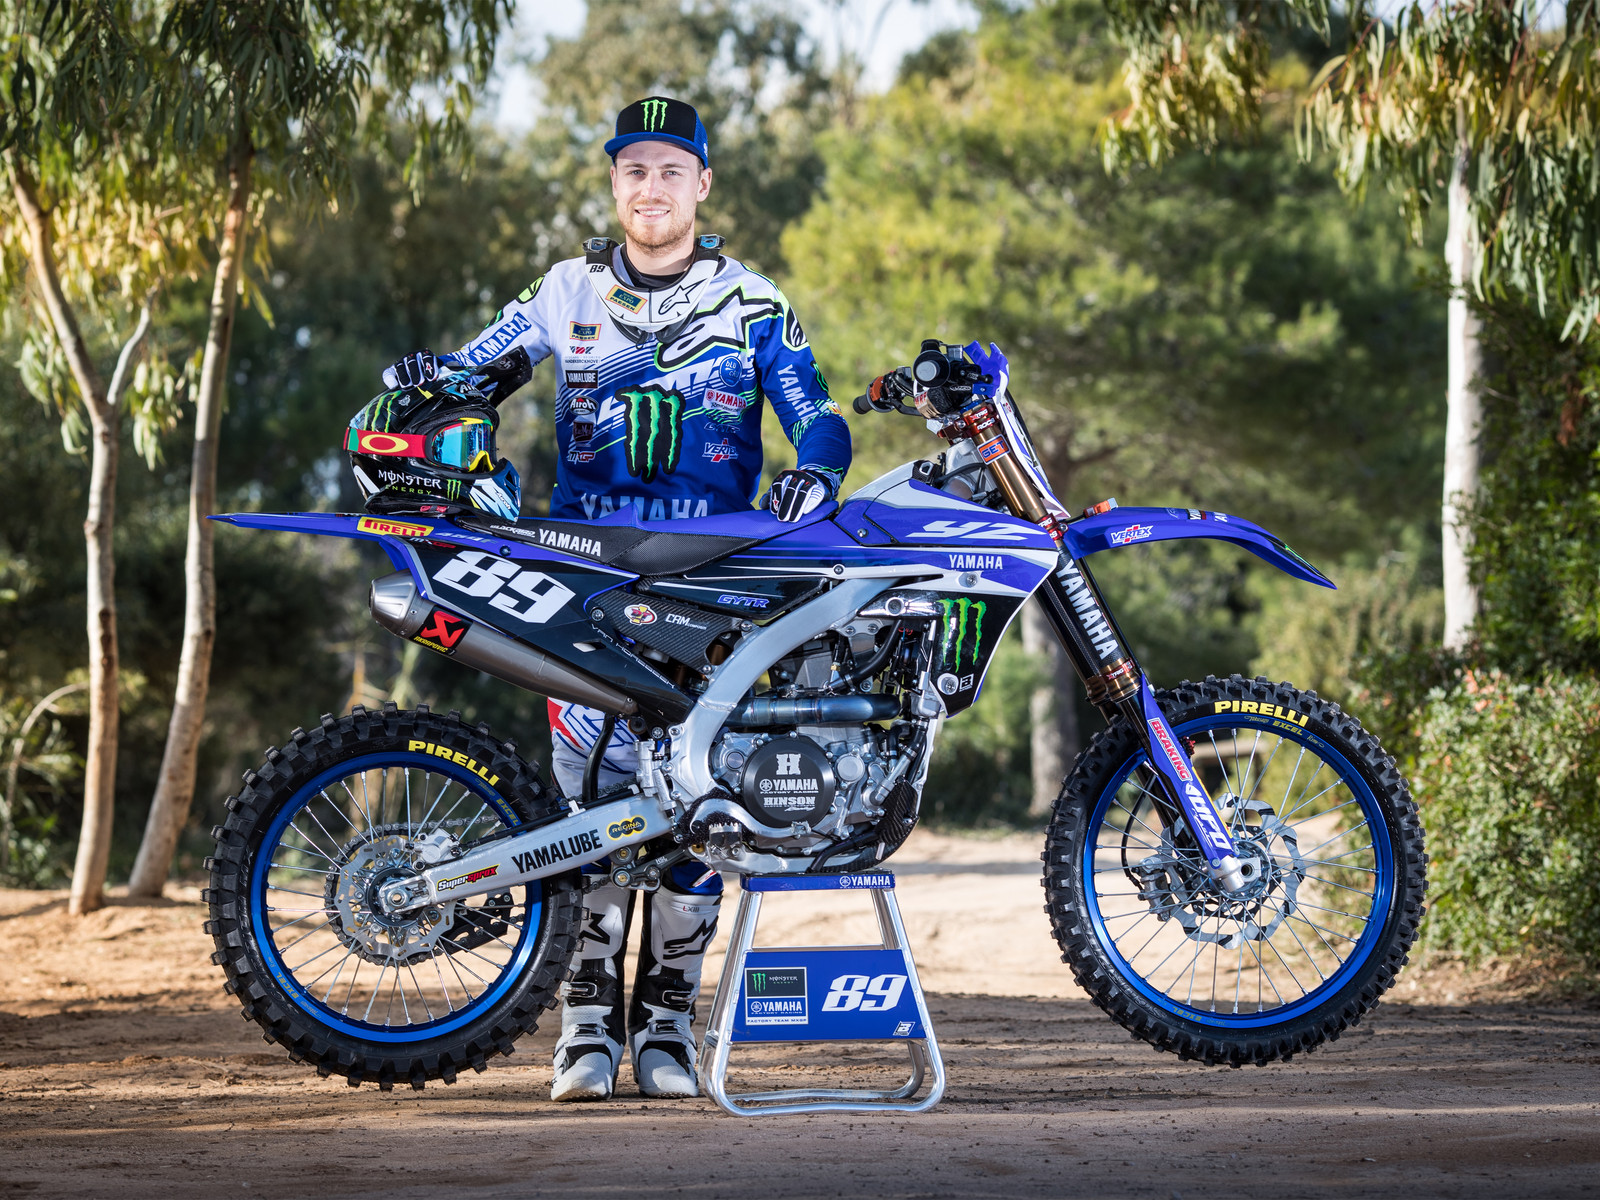 Jeremy van Horebeek and his 2017 Monster Energy Yamaha Factory YZ450FM - First Look: 2017 Monster Energy & Wilvo Yamaha MXGP Teams - Motocross Pictures - Vital MX